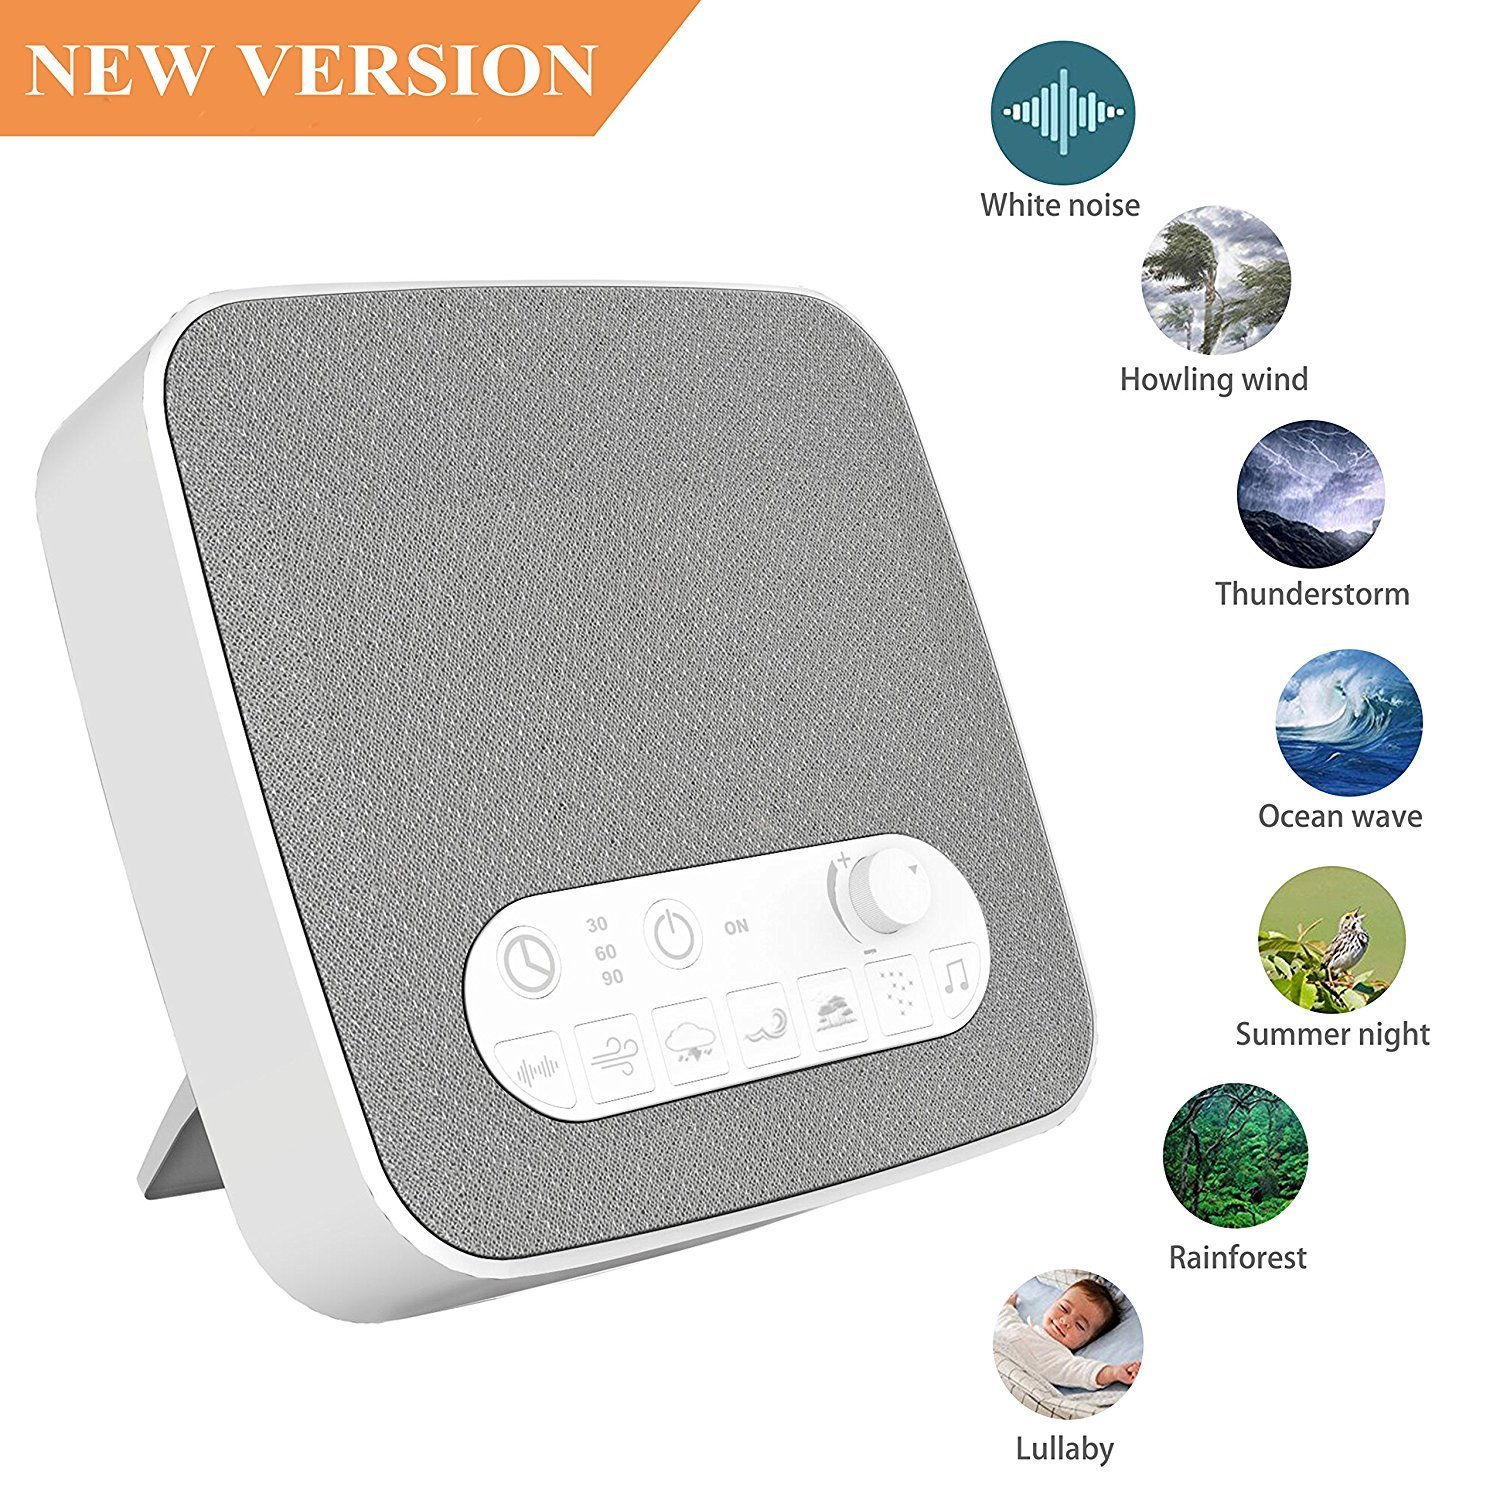 White Noise Machine for Sleeping, BESTHING Sleep Sound Machine with Non-Looping Soothing Sounds for Baby Adult Traveler, Portable for Home Office Travel. Built in USB Output Charger & Timer. by BESTHING (Image #1)